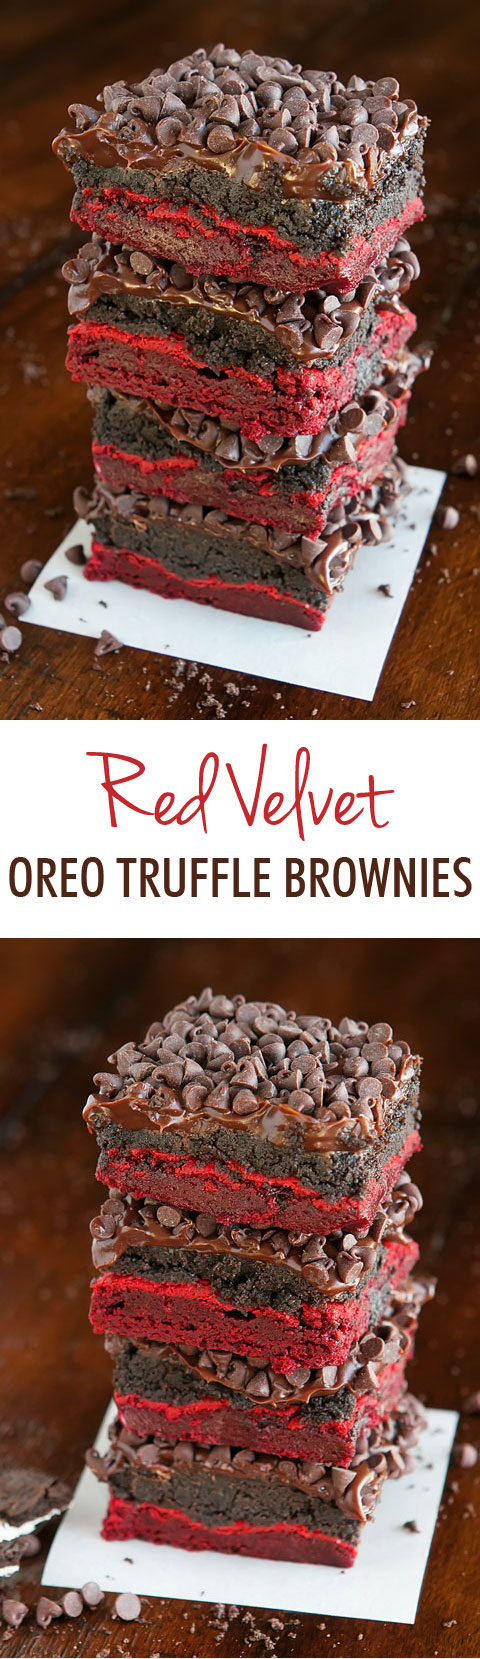 Red Velvet Brownies — The BEST Red Velvet Cake Mix Brownies Ever!!